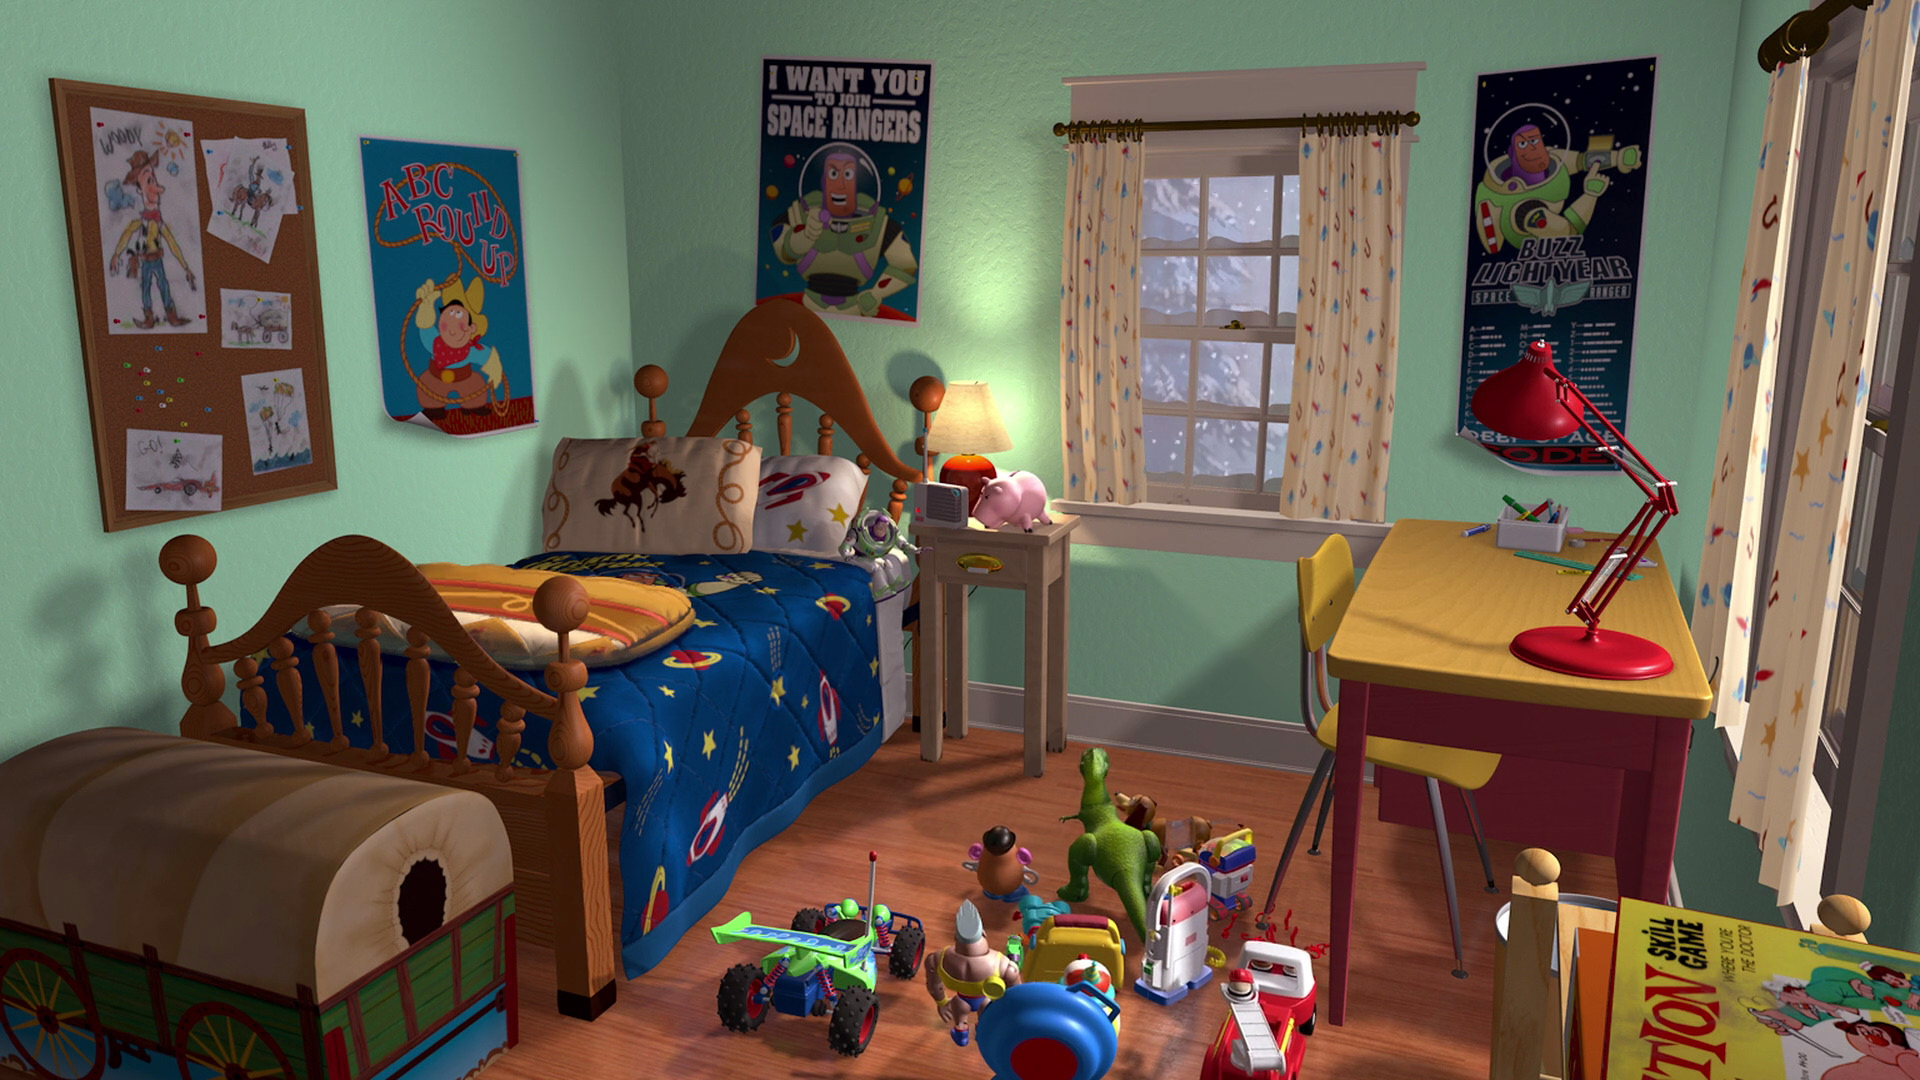 Image Andysnewroom Jpg Pixar Wiki Fandom Powered By